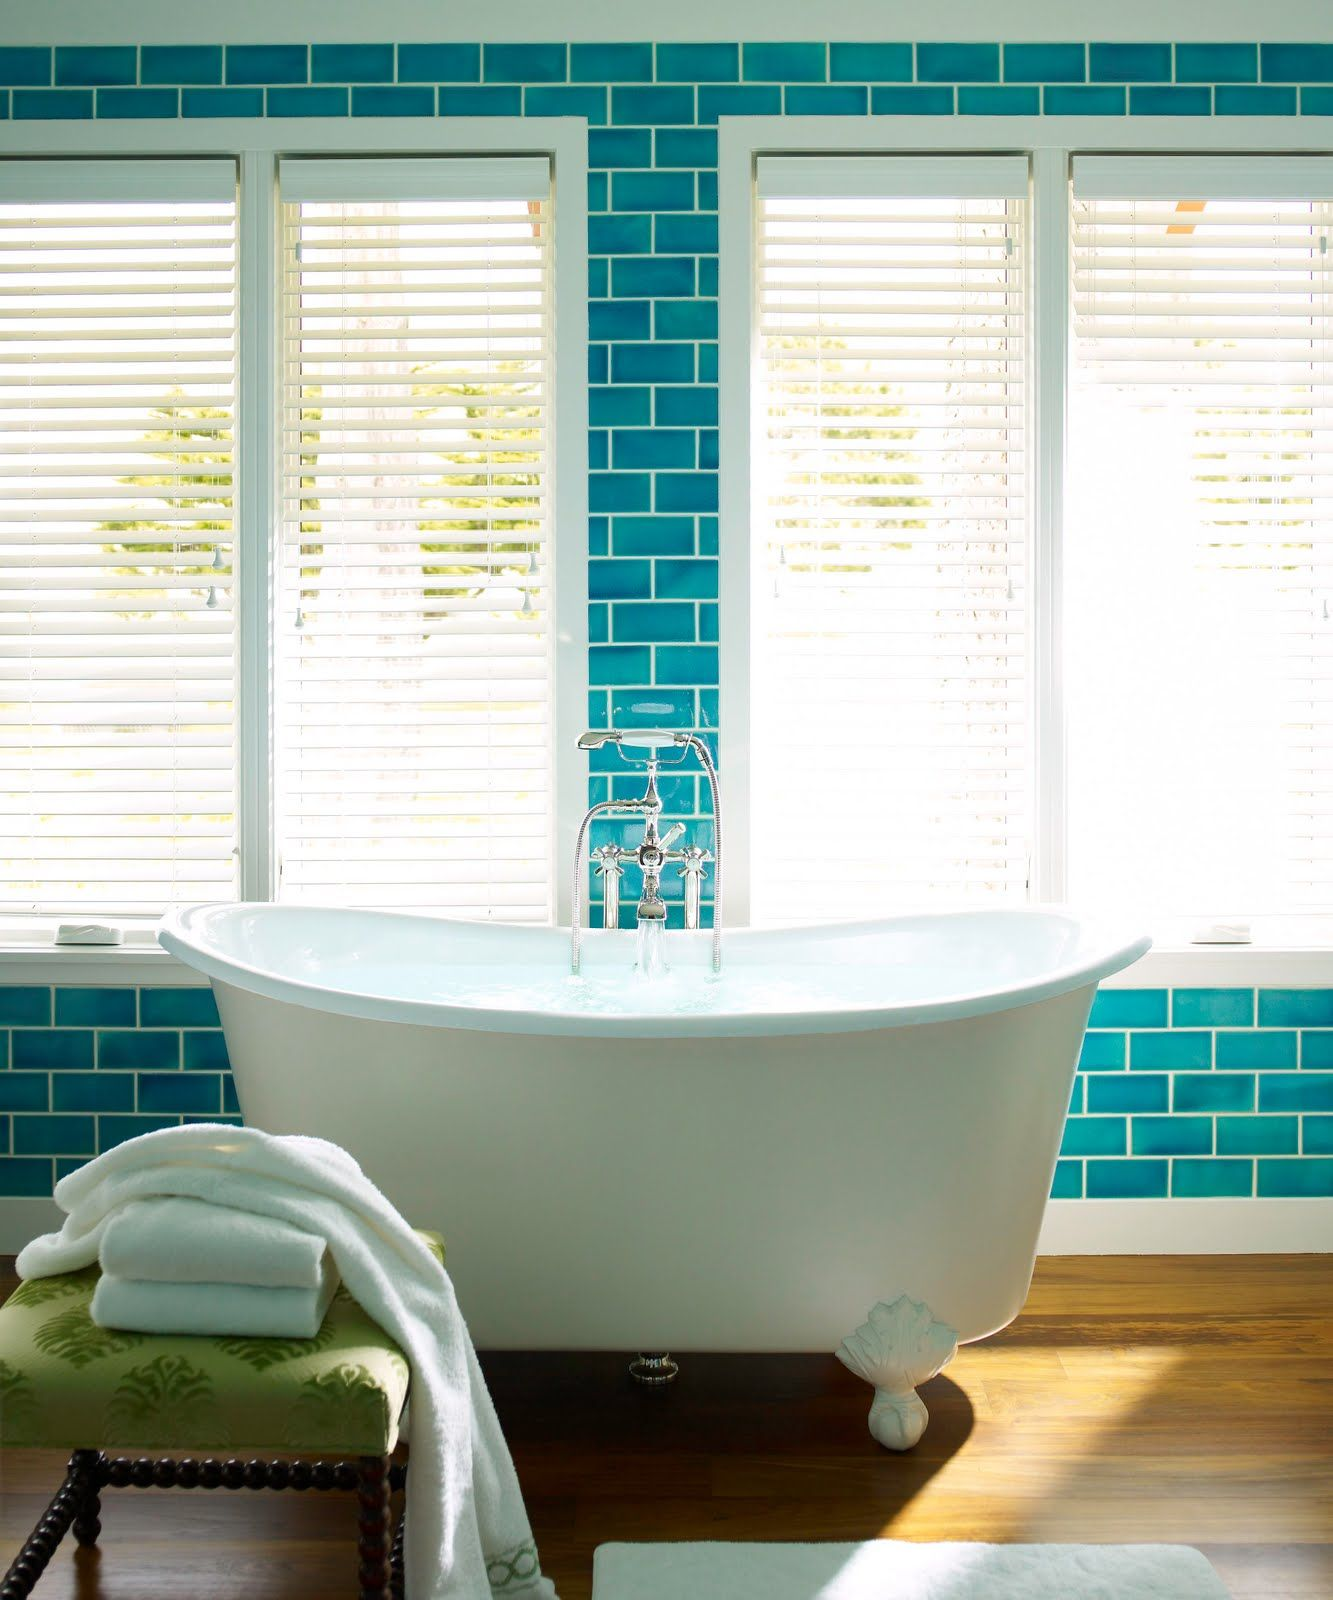 Blue Subway Tile Bathroom | baie | Pinterest | Blue subway tile ...